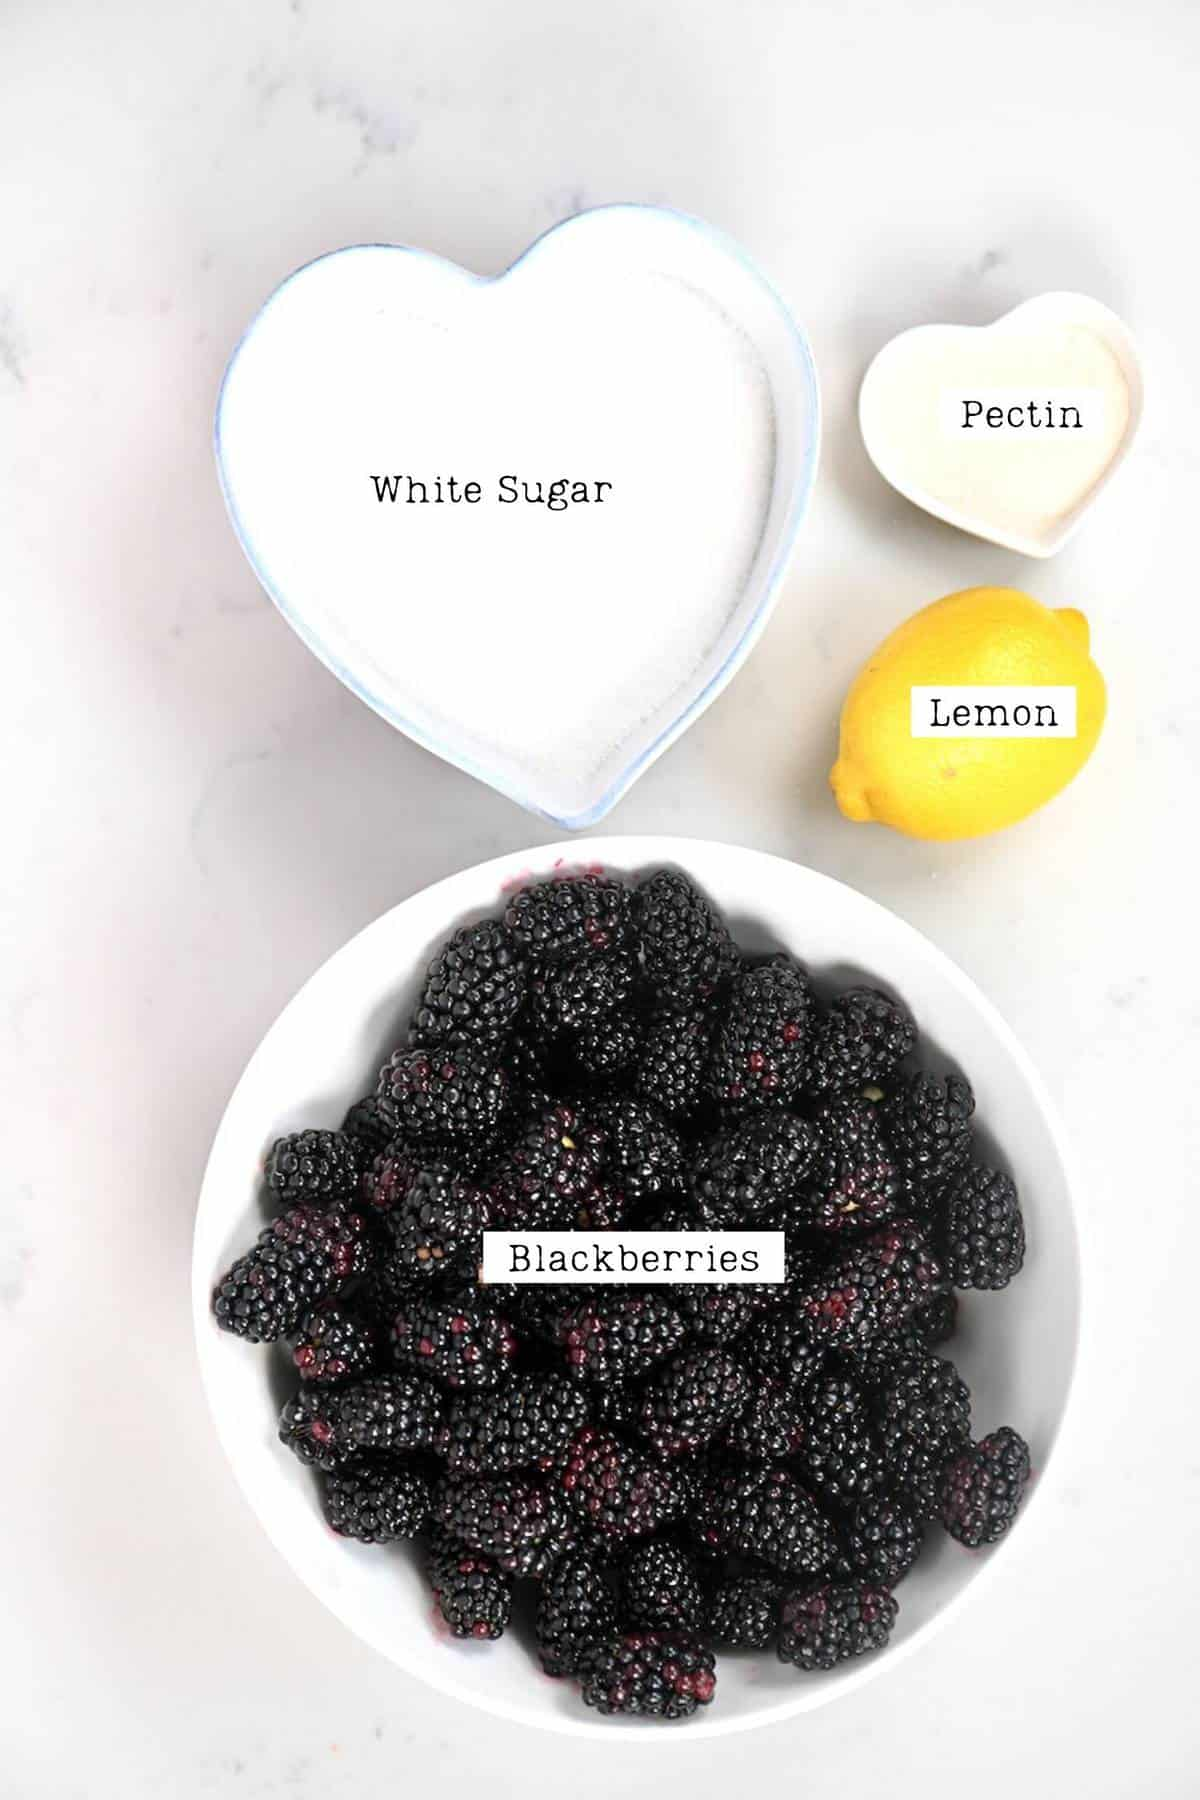 Ingredients for making Blackberry Jam